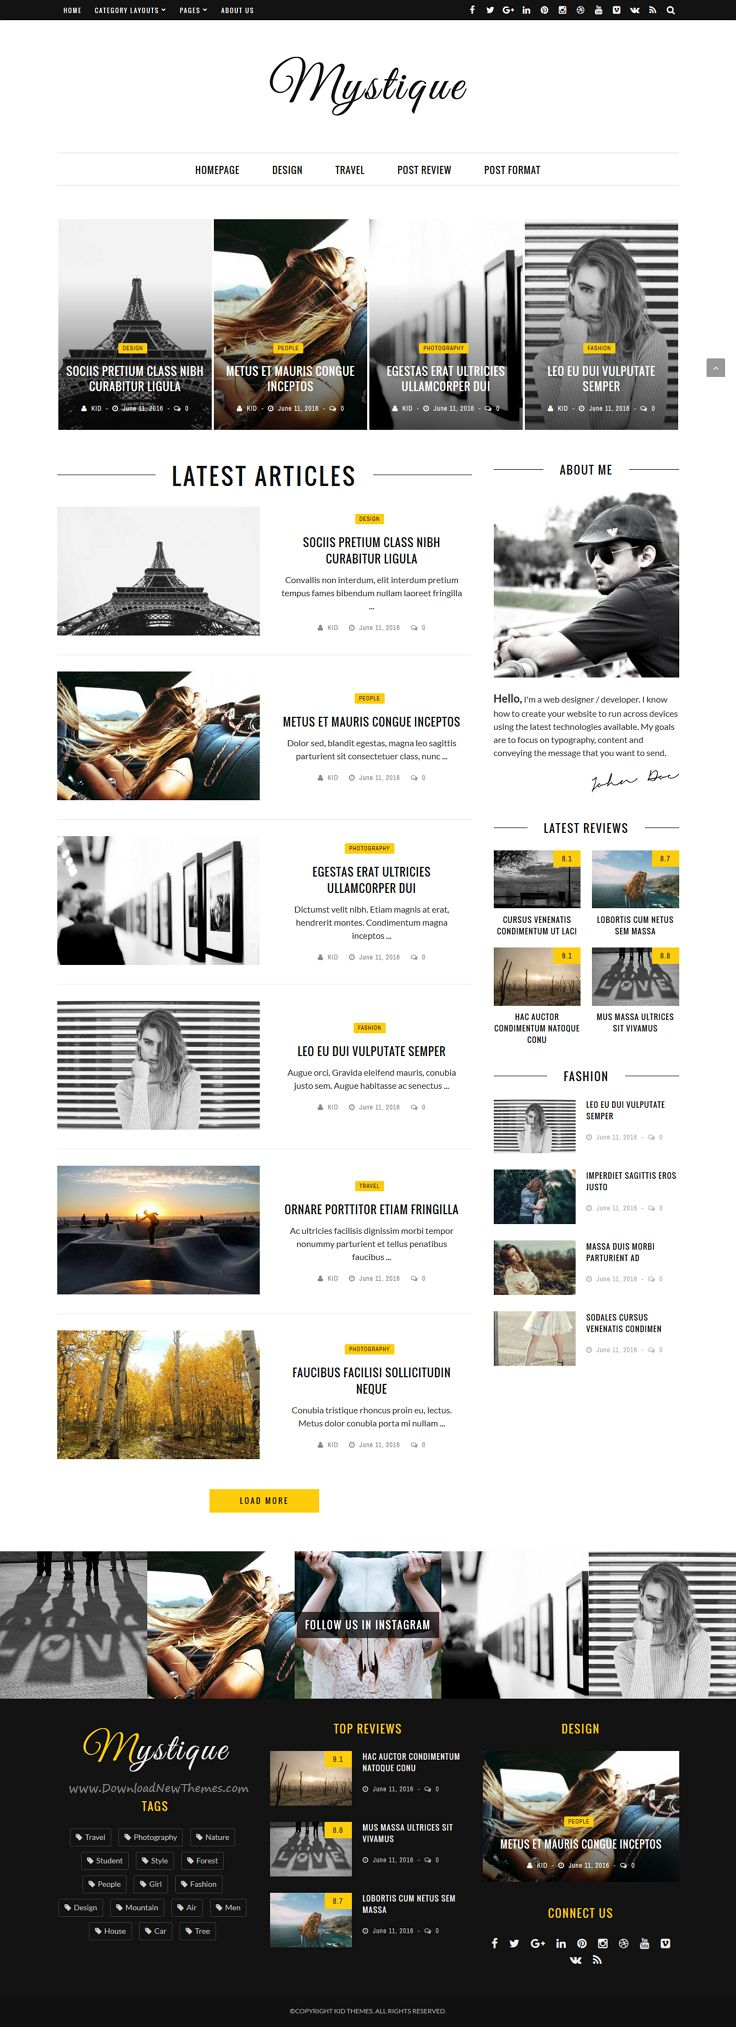 Mystique is flat, clean and super flexible #responsive #WordPress #theme for magazine, news or blog website with 100+ amazing demos download now➯ https://themeforest.net/item/mystique-fast-clean-flexible-wordpress-magazine-news-blog-theme/16643343?ref=Datasata